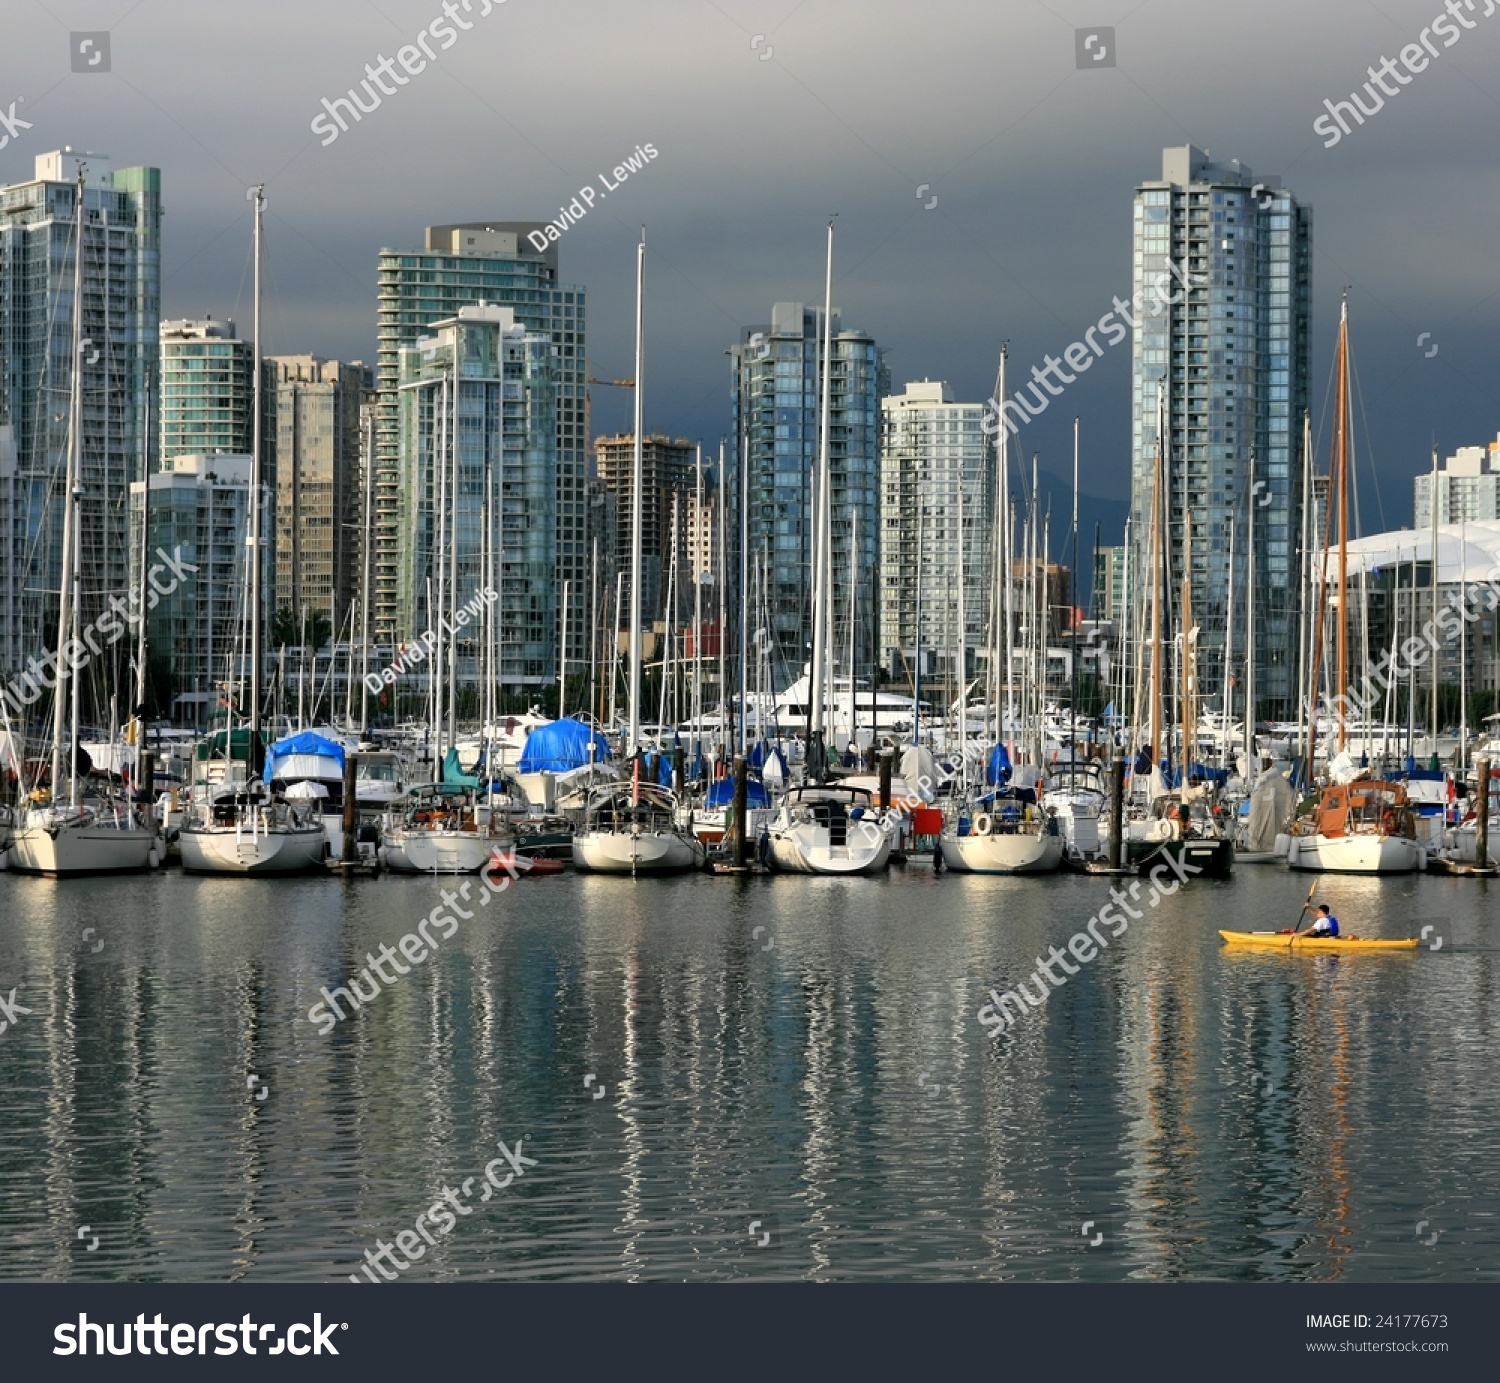 Yaletown Vancouver: False Creek And Yaletown In Vancouver, British Columbia